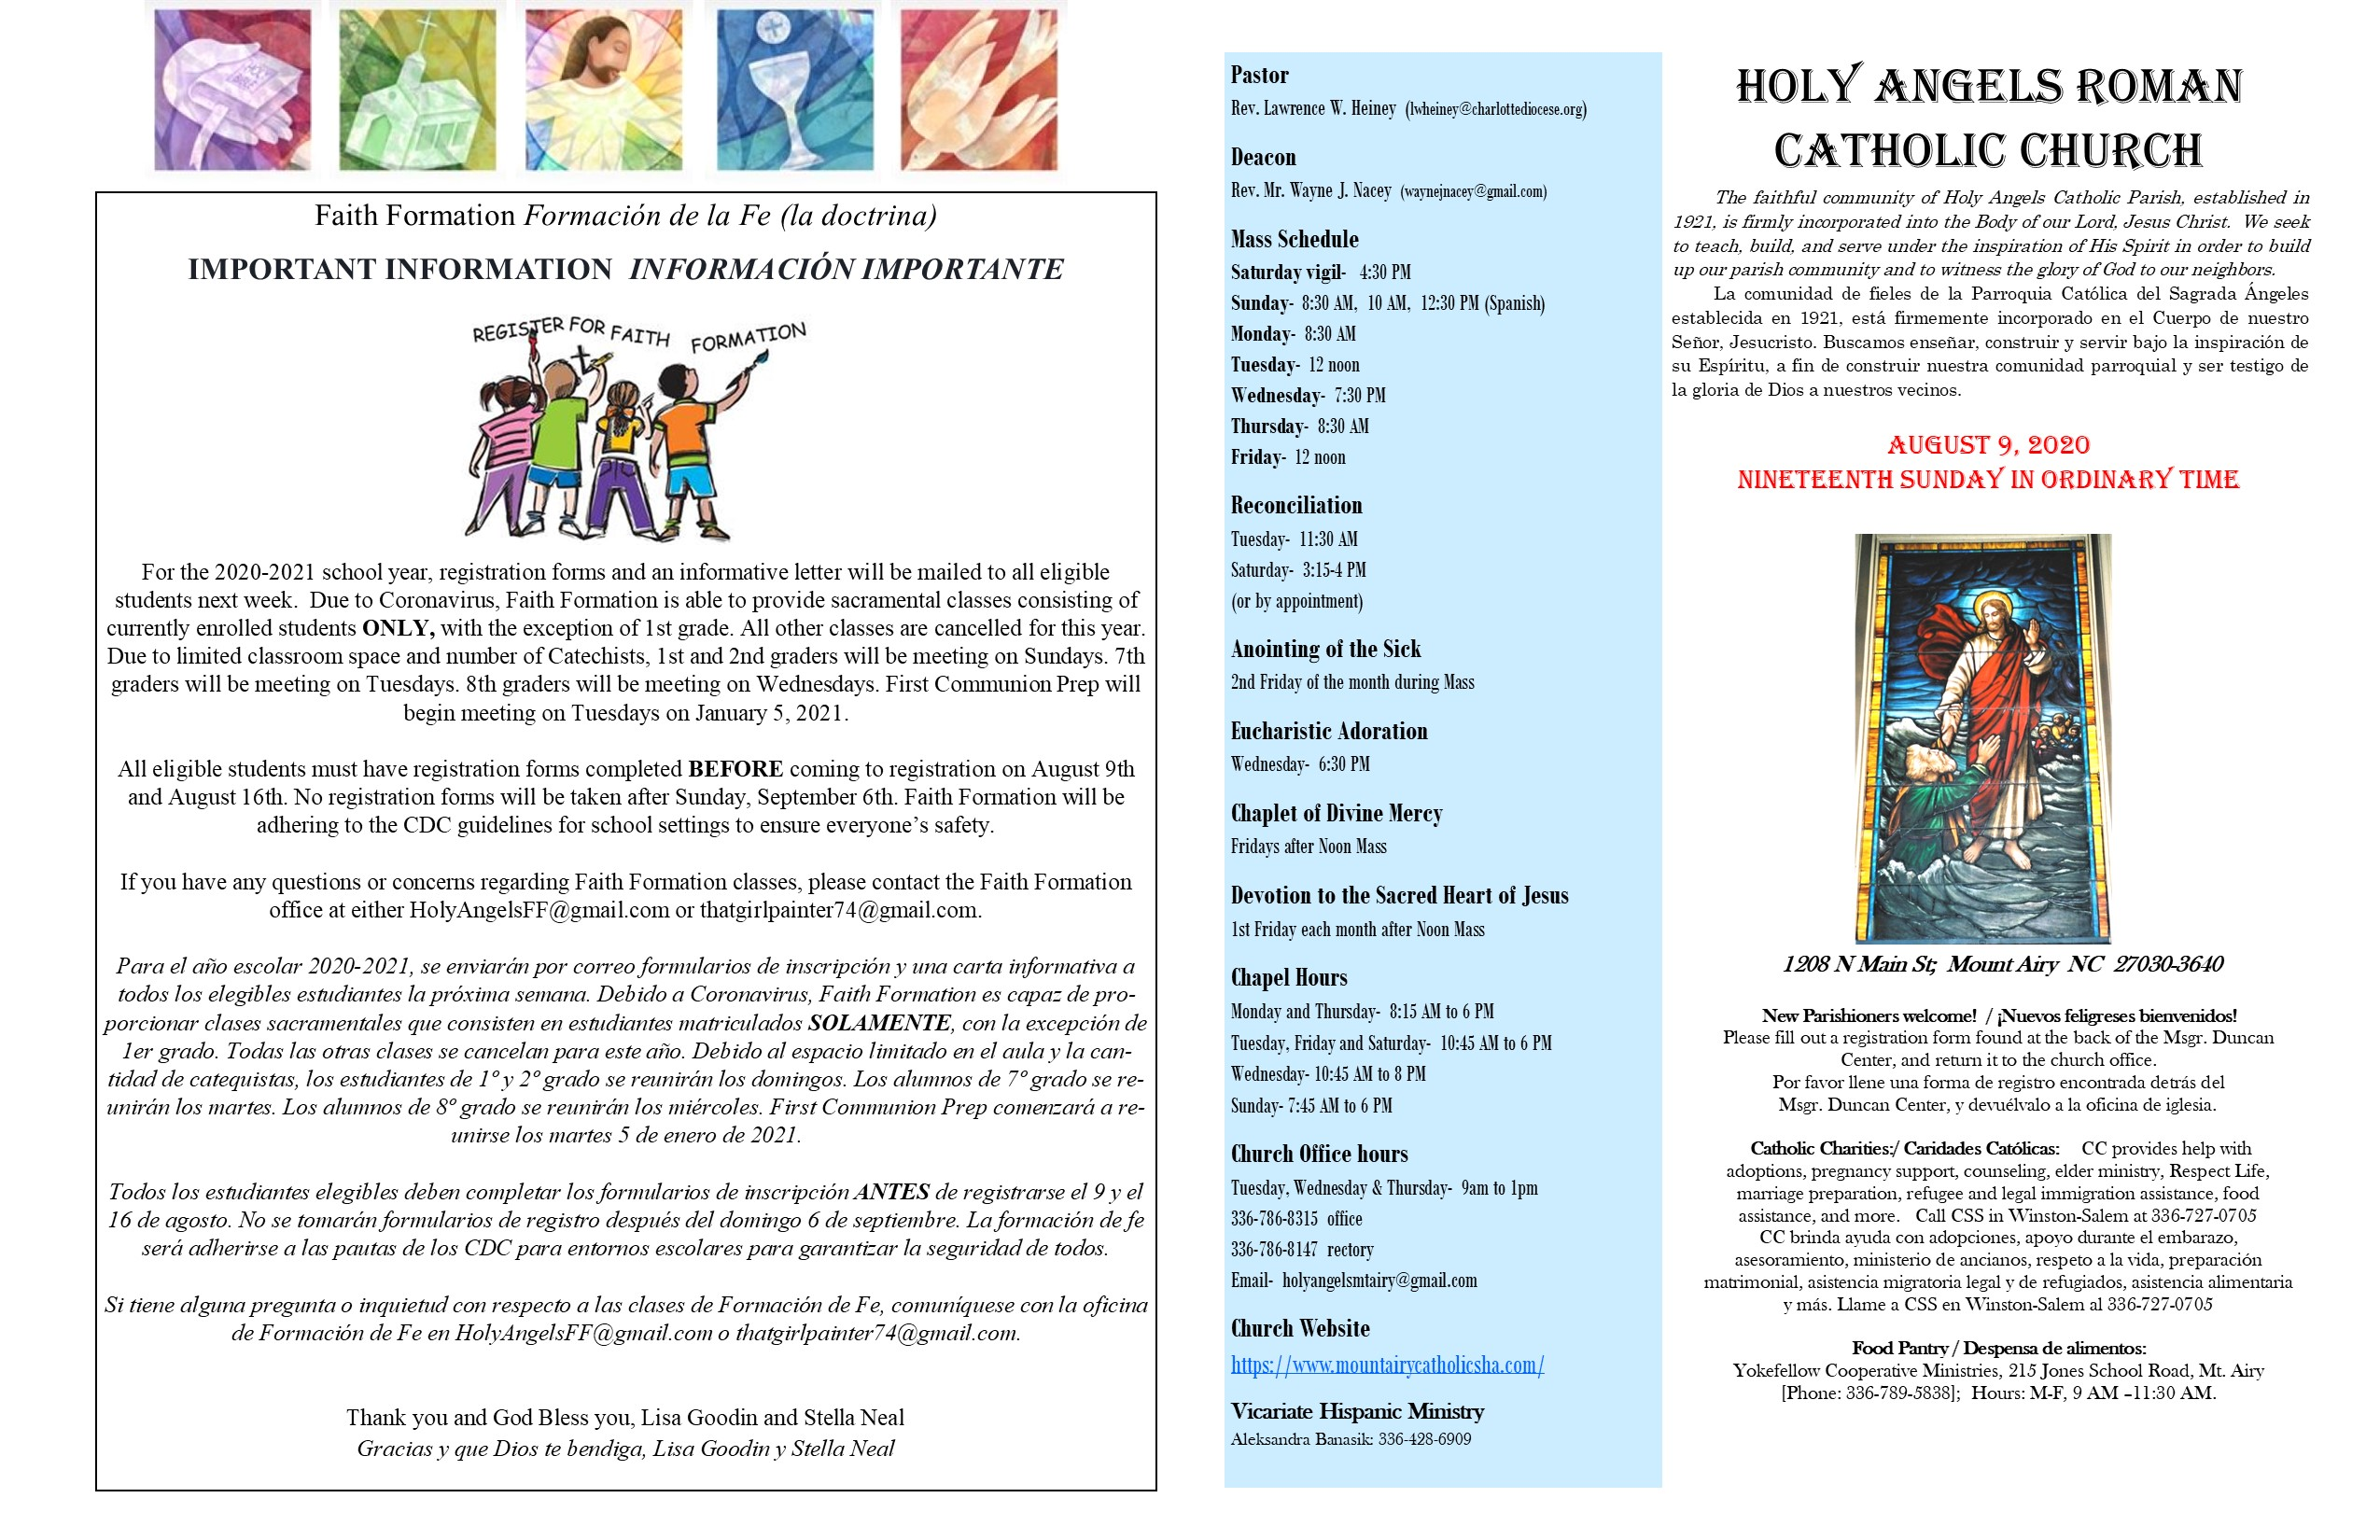 August 9 2020 page 1.jpg